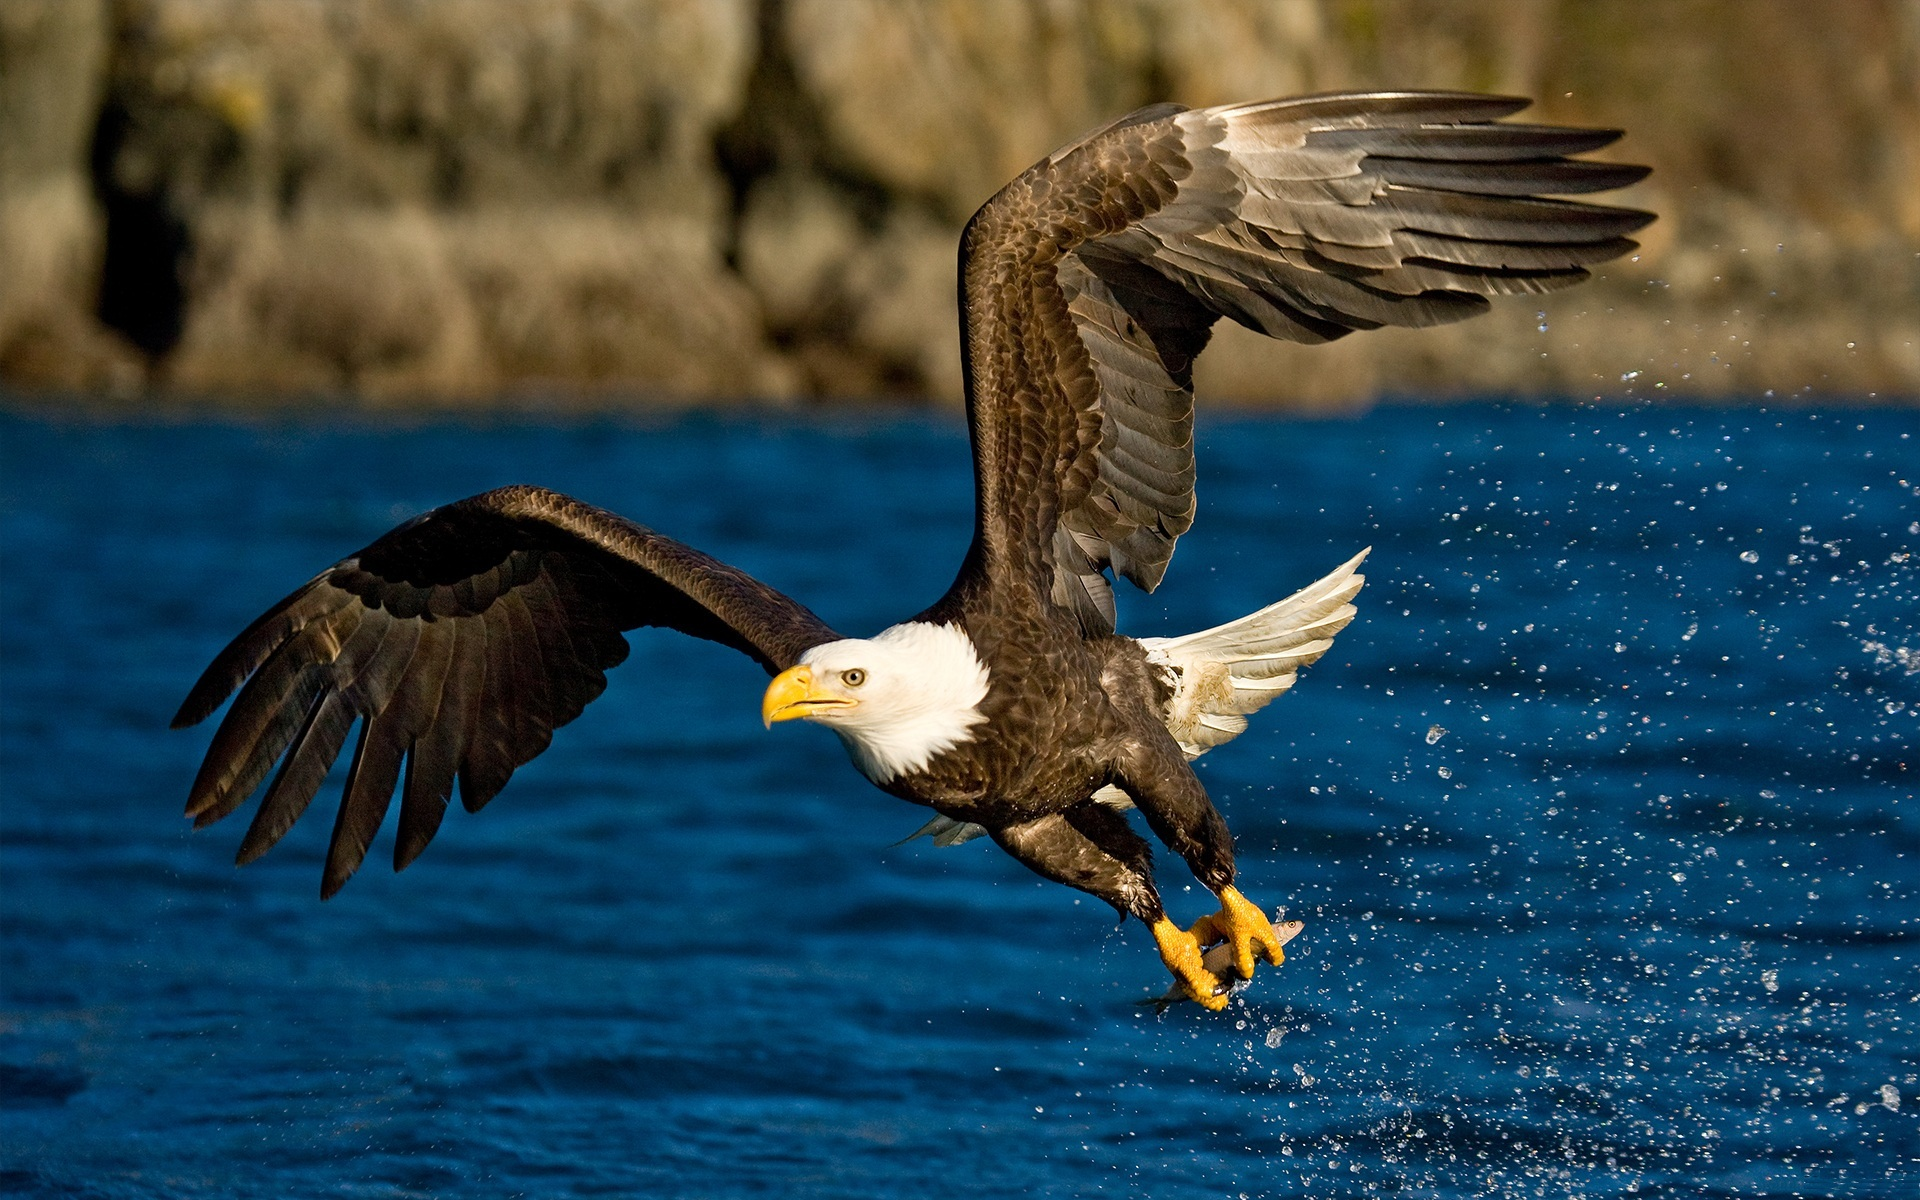 39071 download wallpaper Animals, Birds, Eagles screensavers and pictures for free